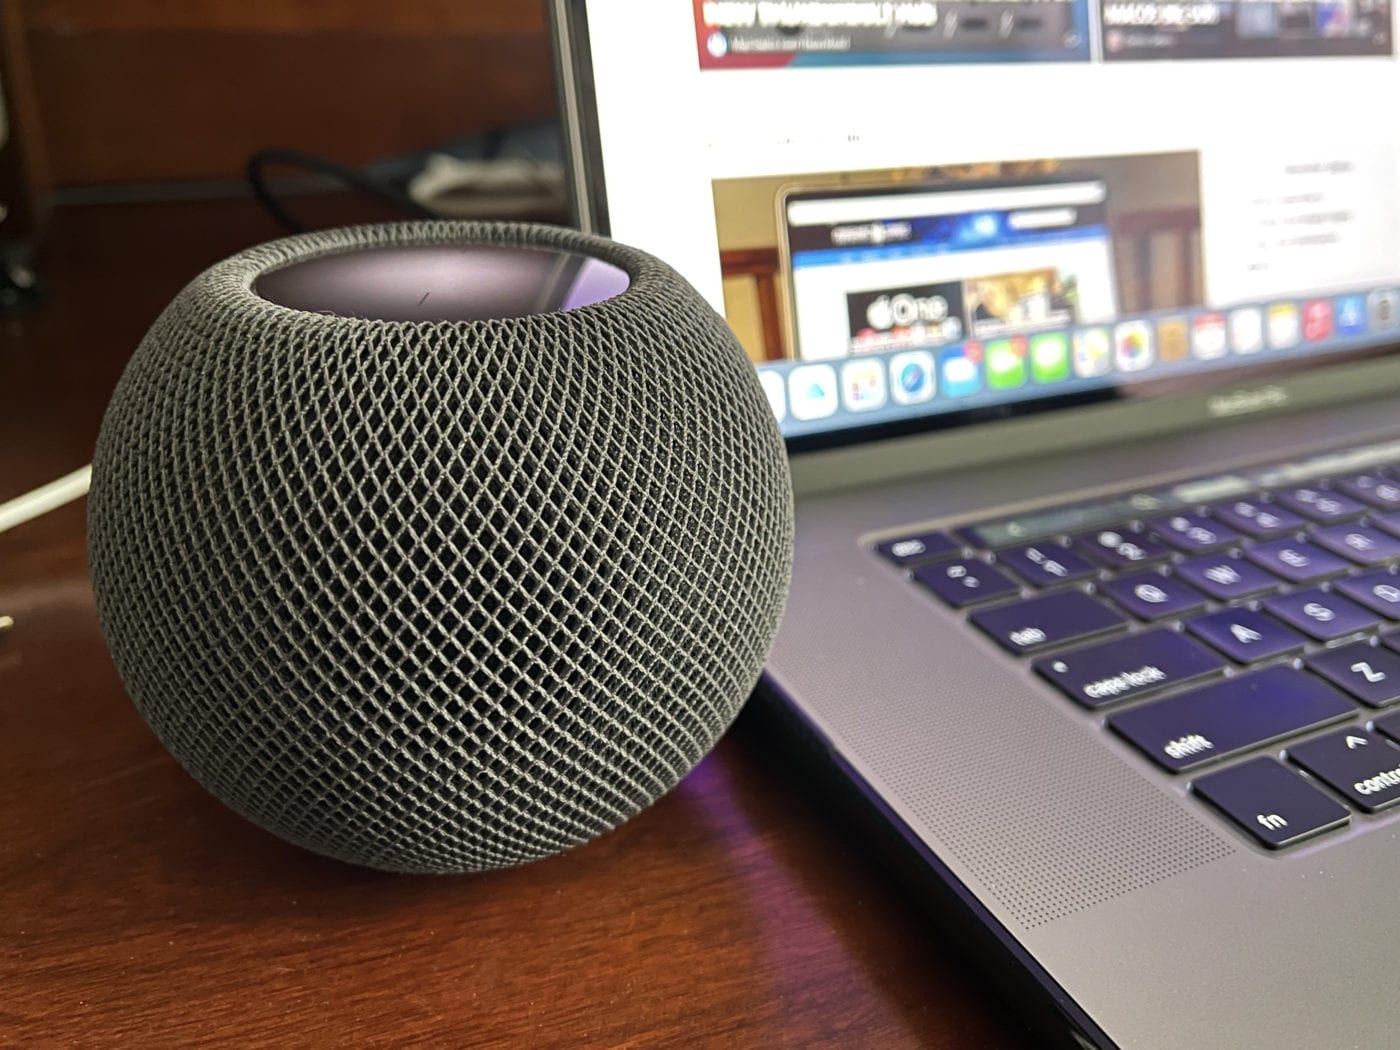 The HomePod mini in Space Gray. Photo by Steven Sande